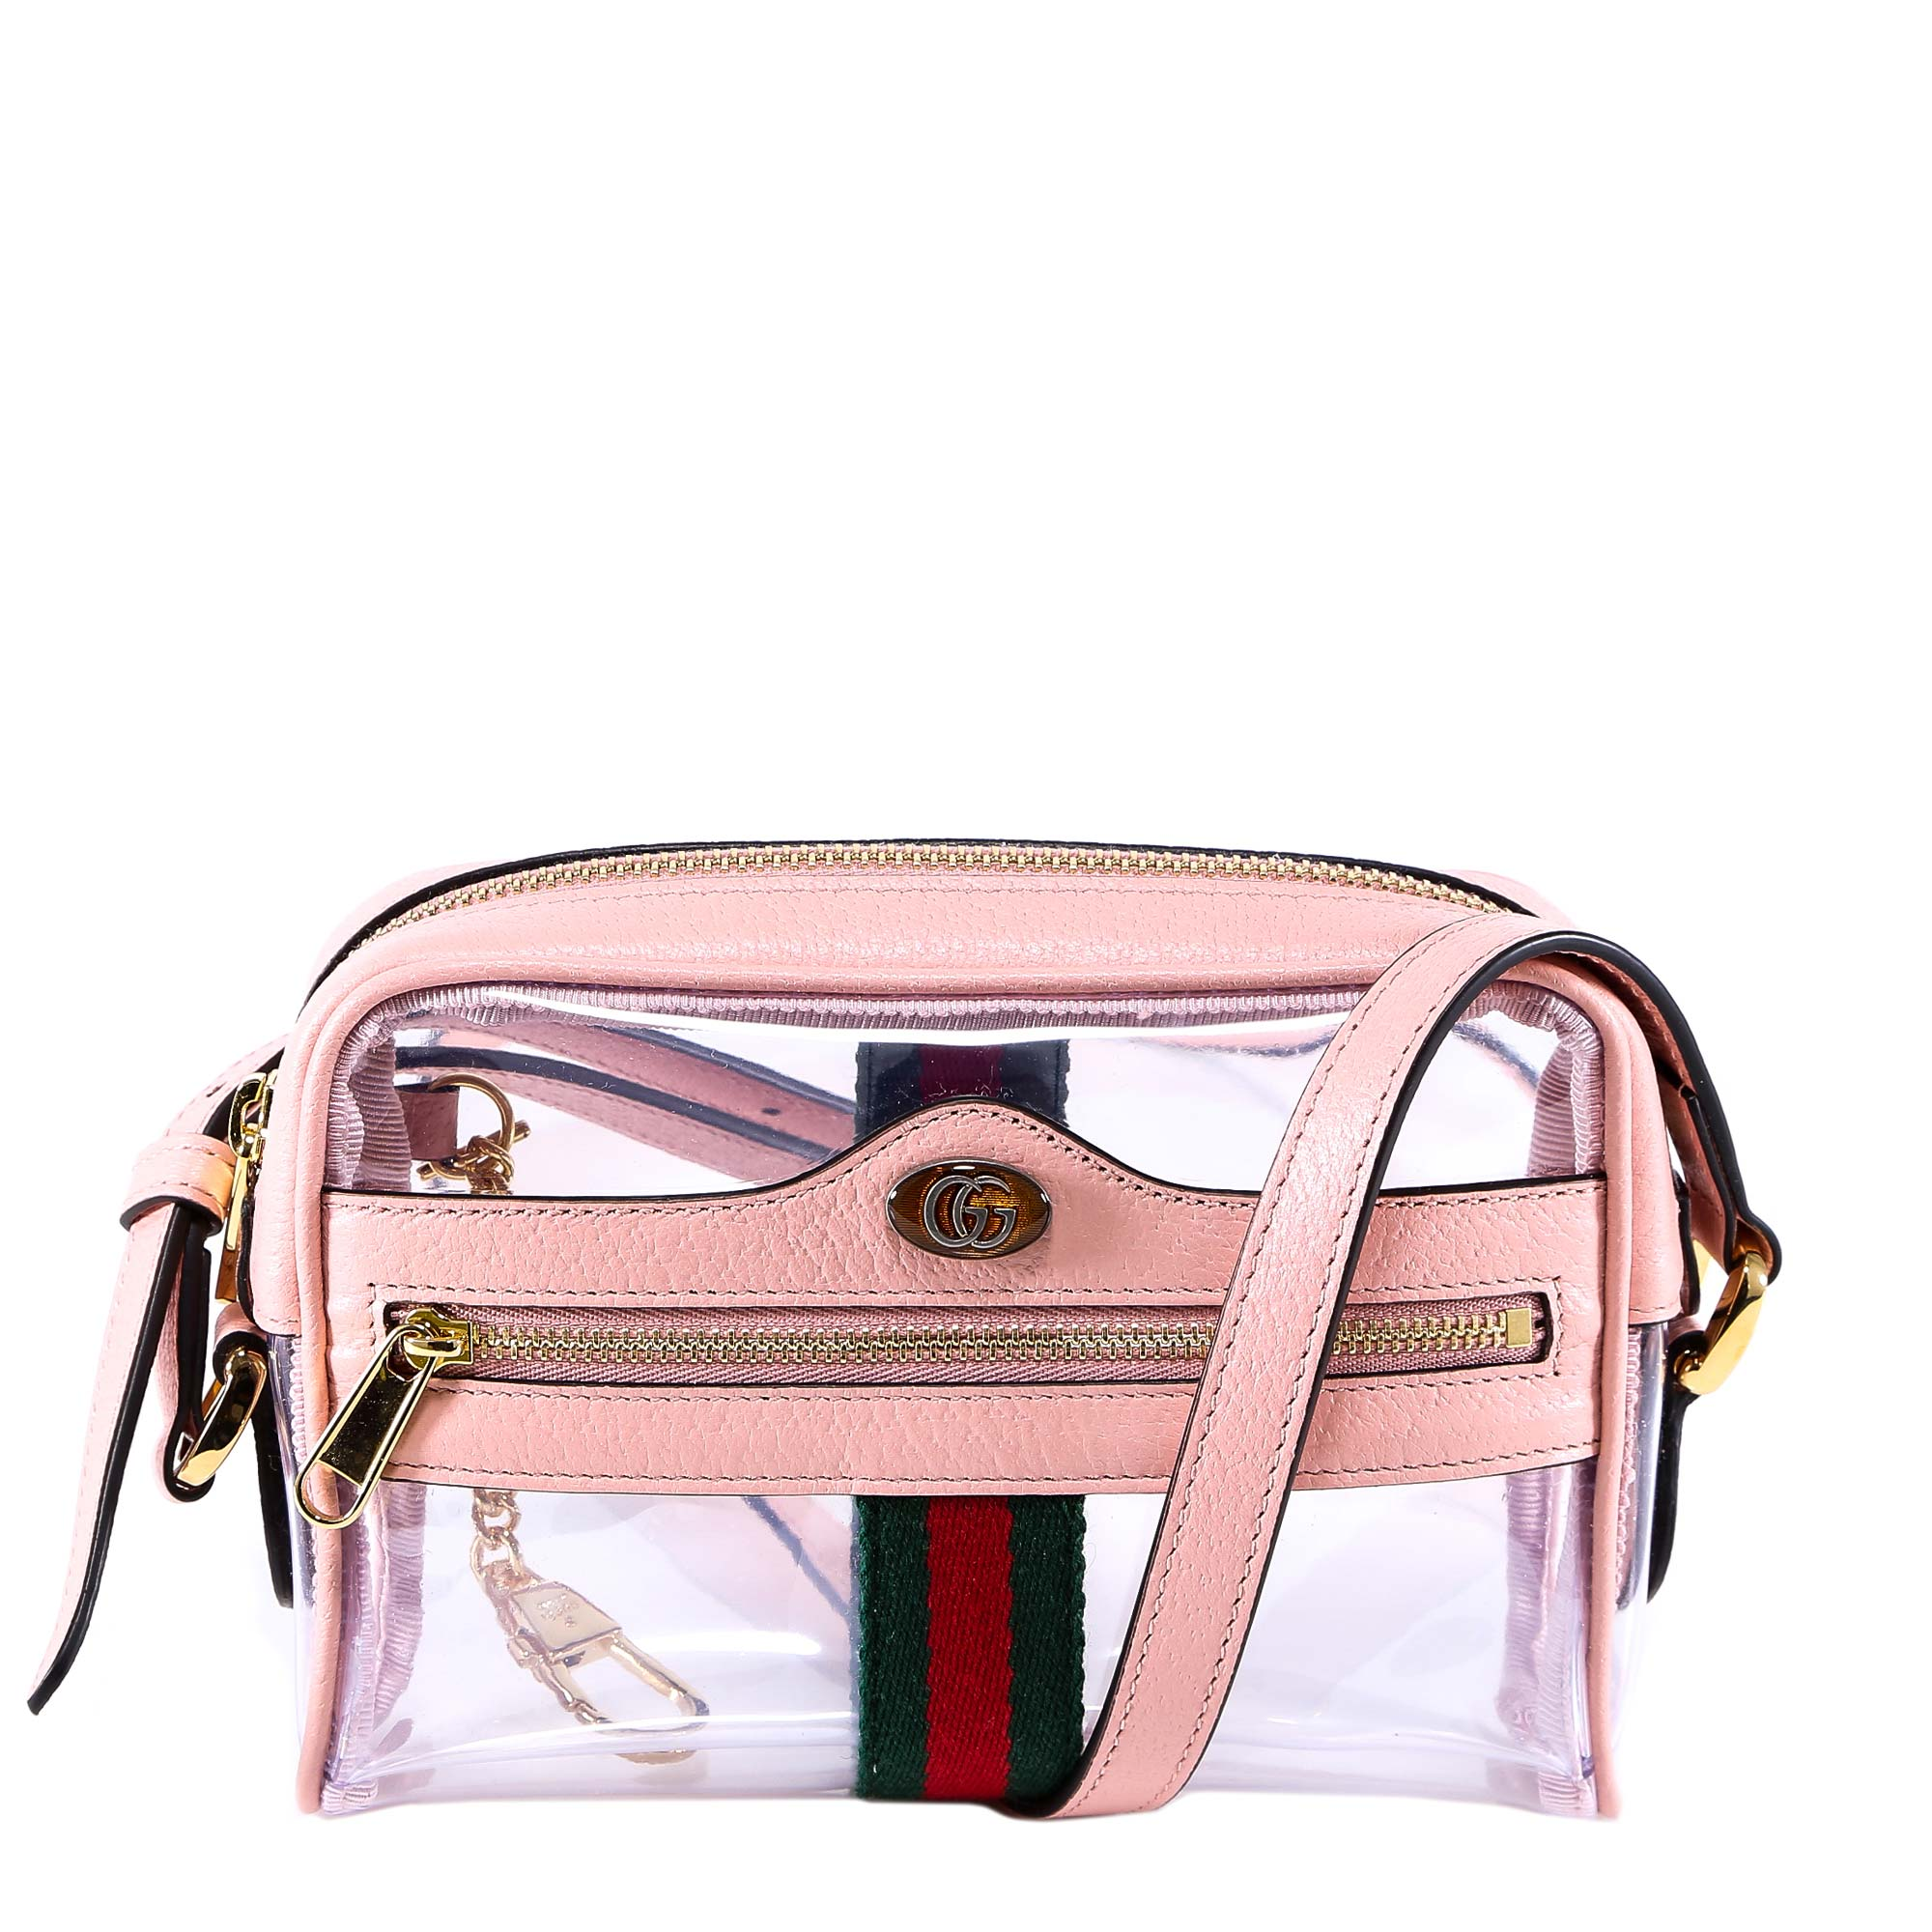 ce6de1d63240 Gucci Ophidia Mini Transparent Shoulder Bag In Pink | ModeSens